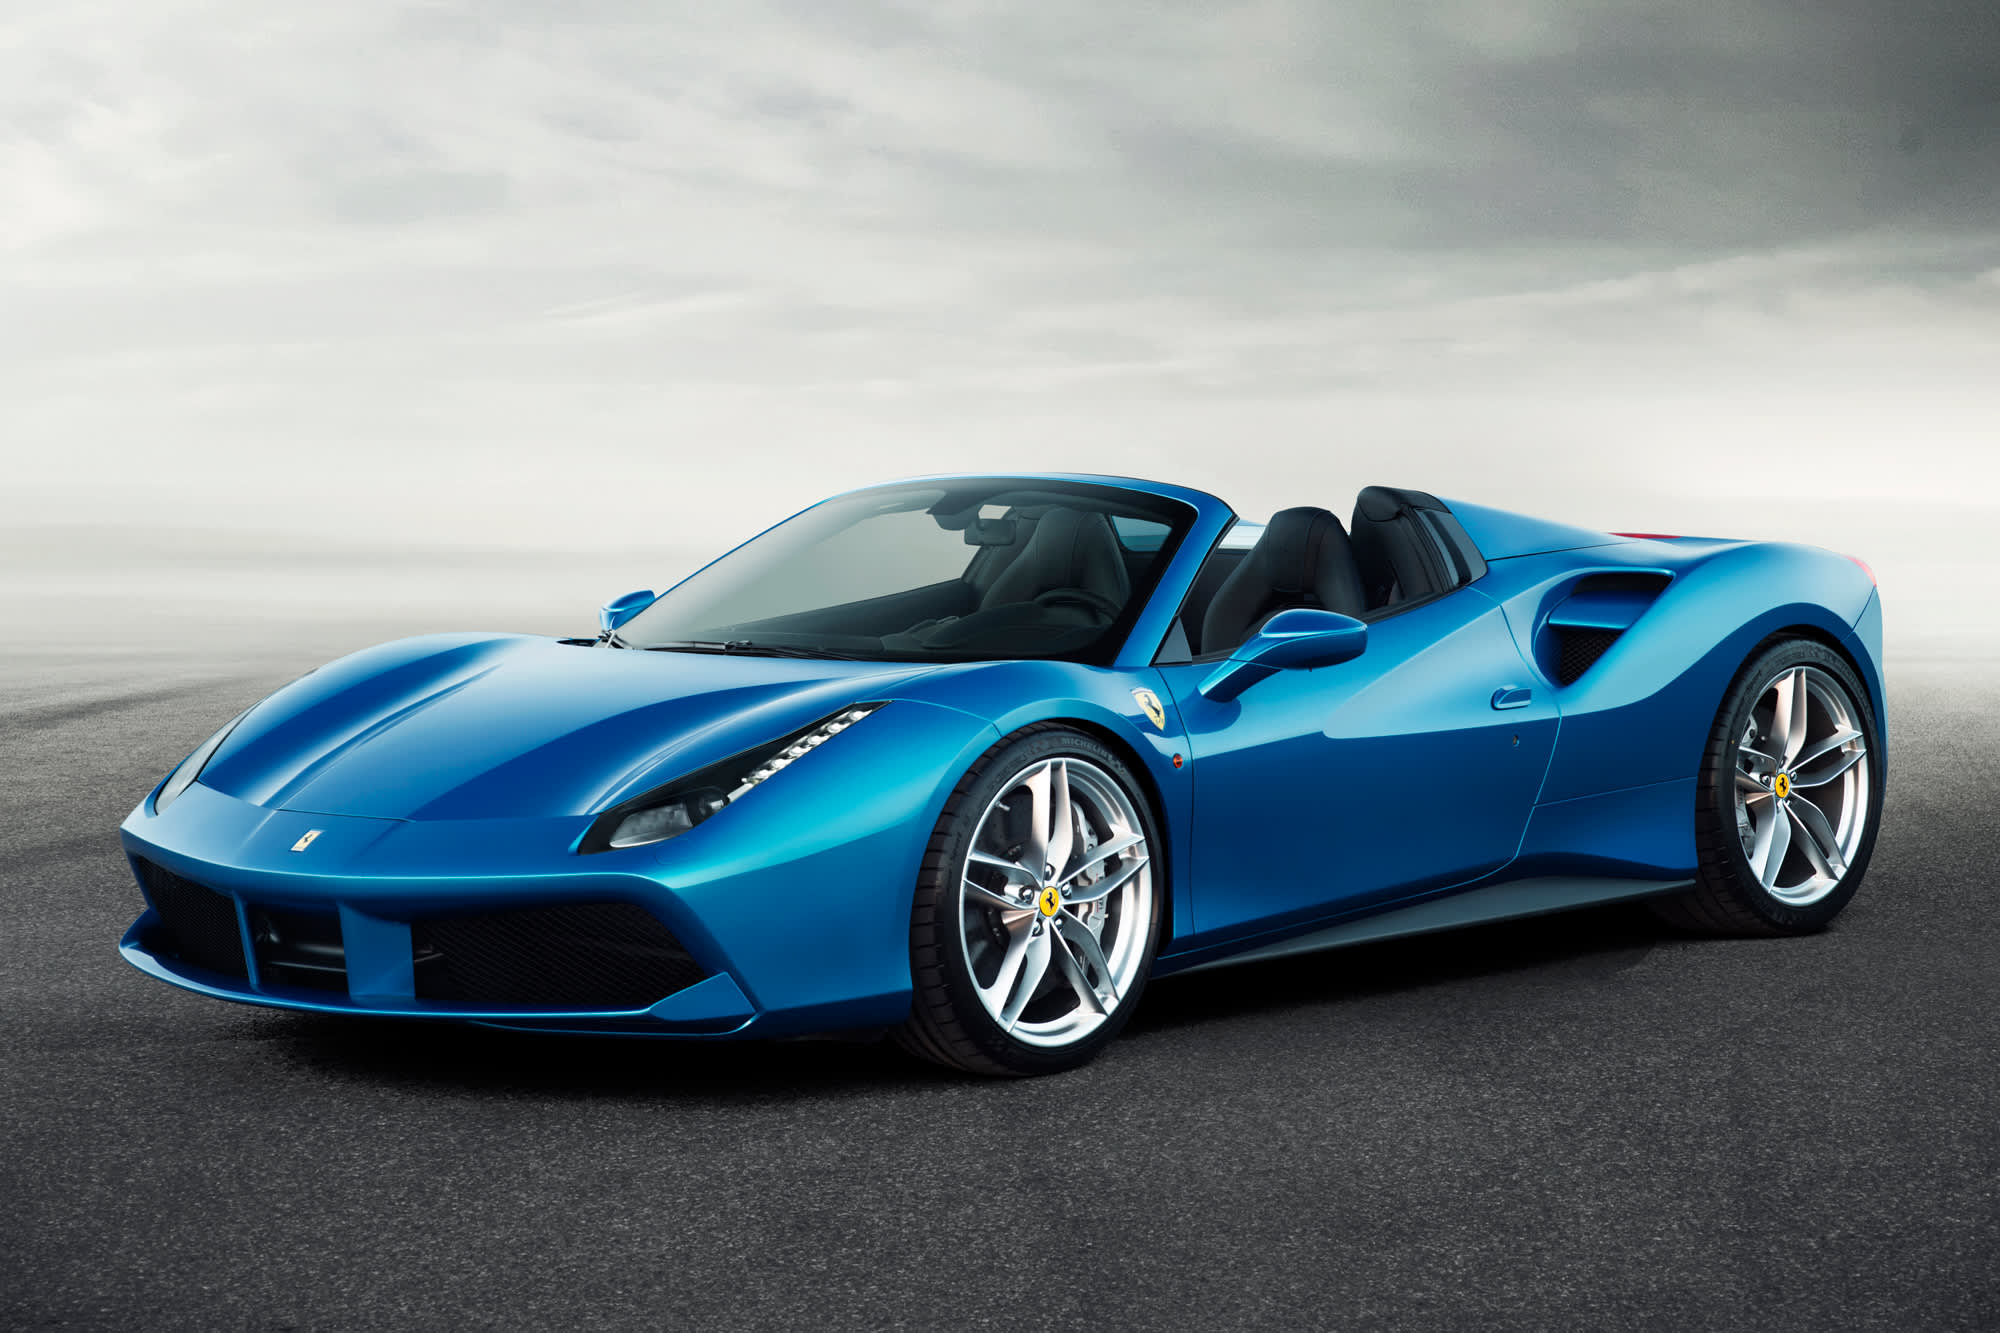 Ferrari Valued At Up To 9 8 Billion In U S Ipo Fiat Chrysler To Sell 10